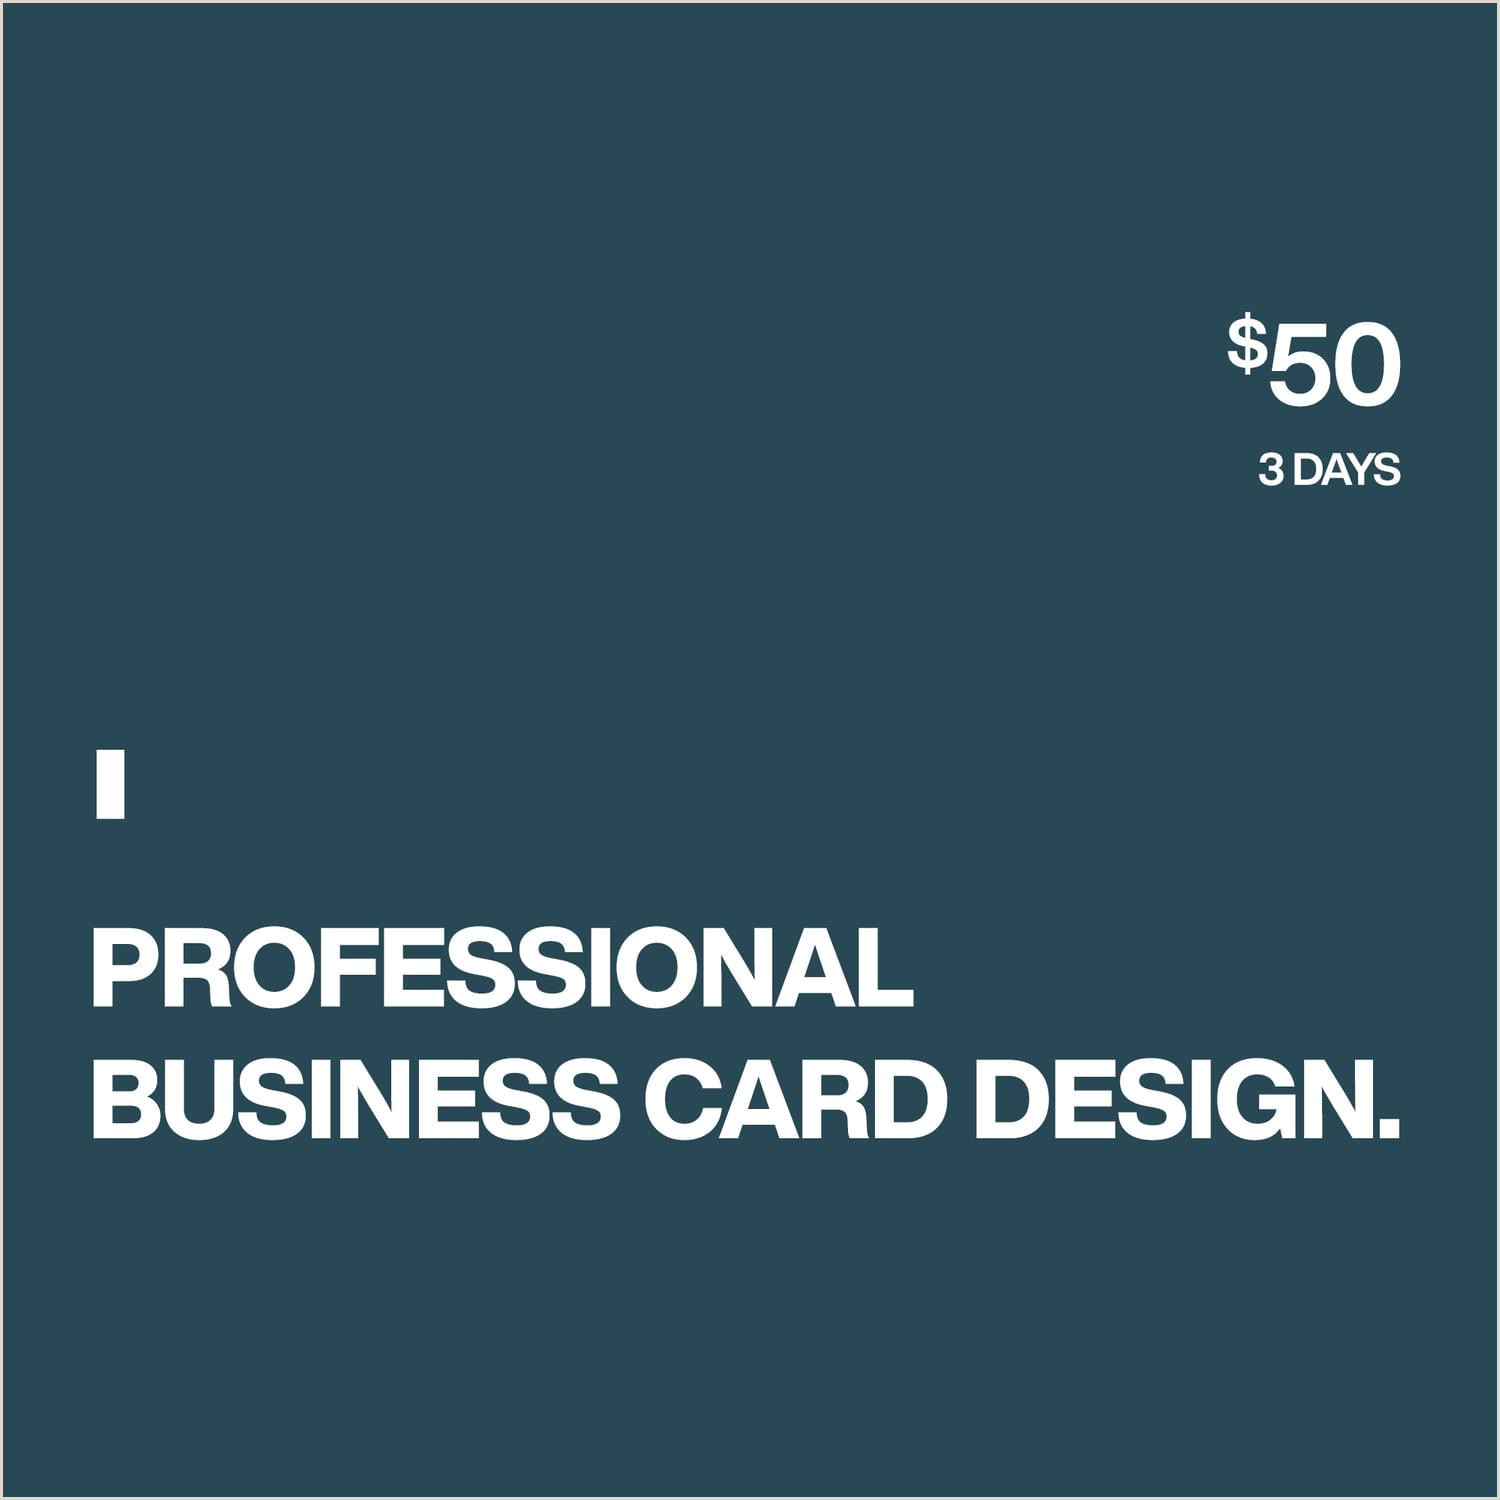 We Buy Houses Business Card Templates Professional Business Card Design By Unicogfx On Envato Studio